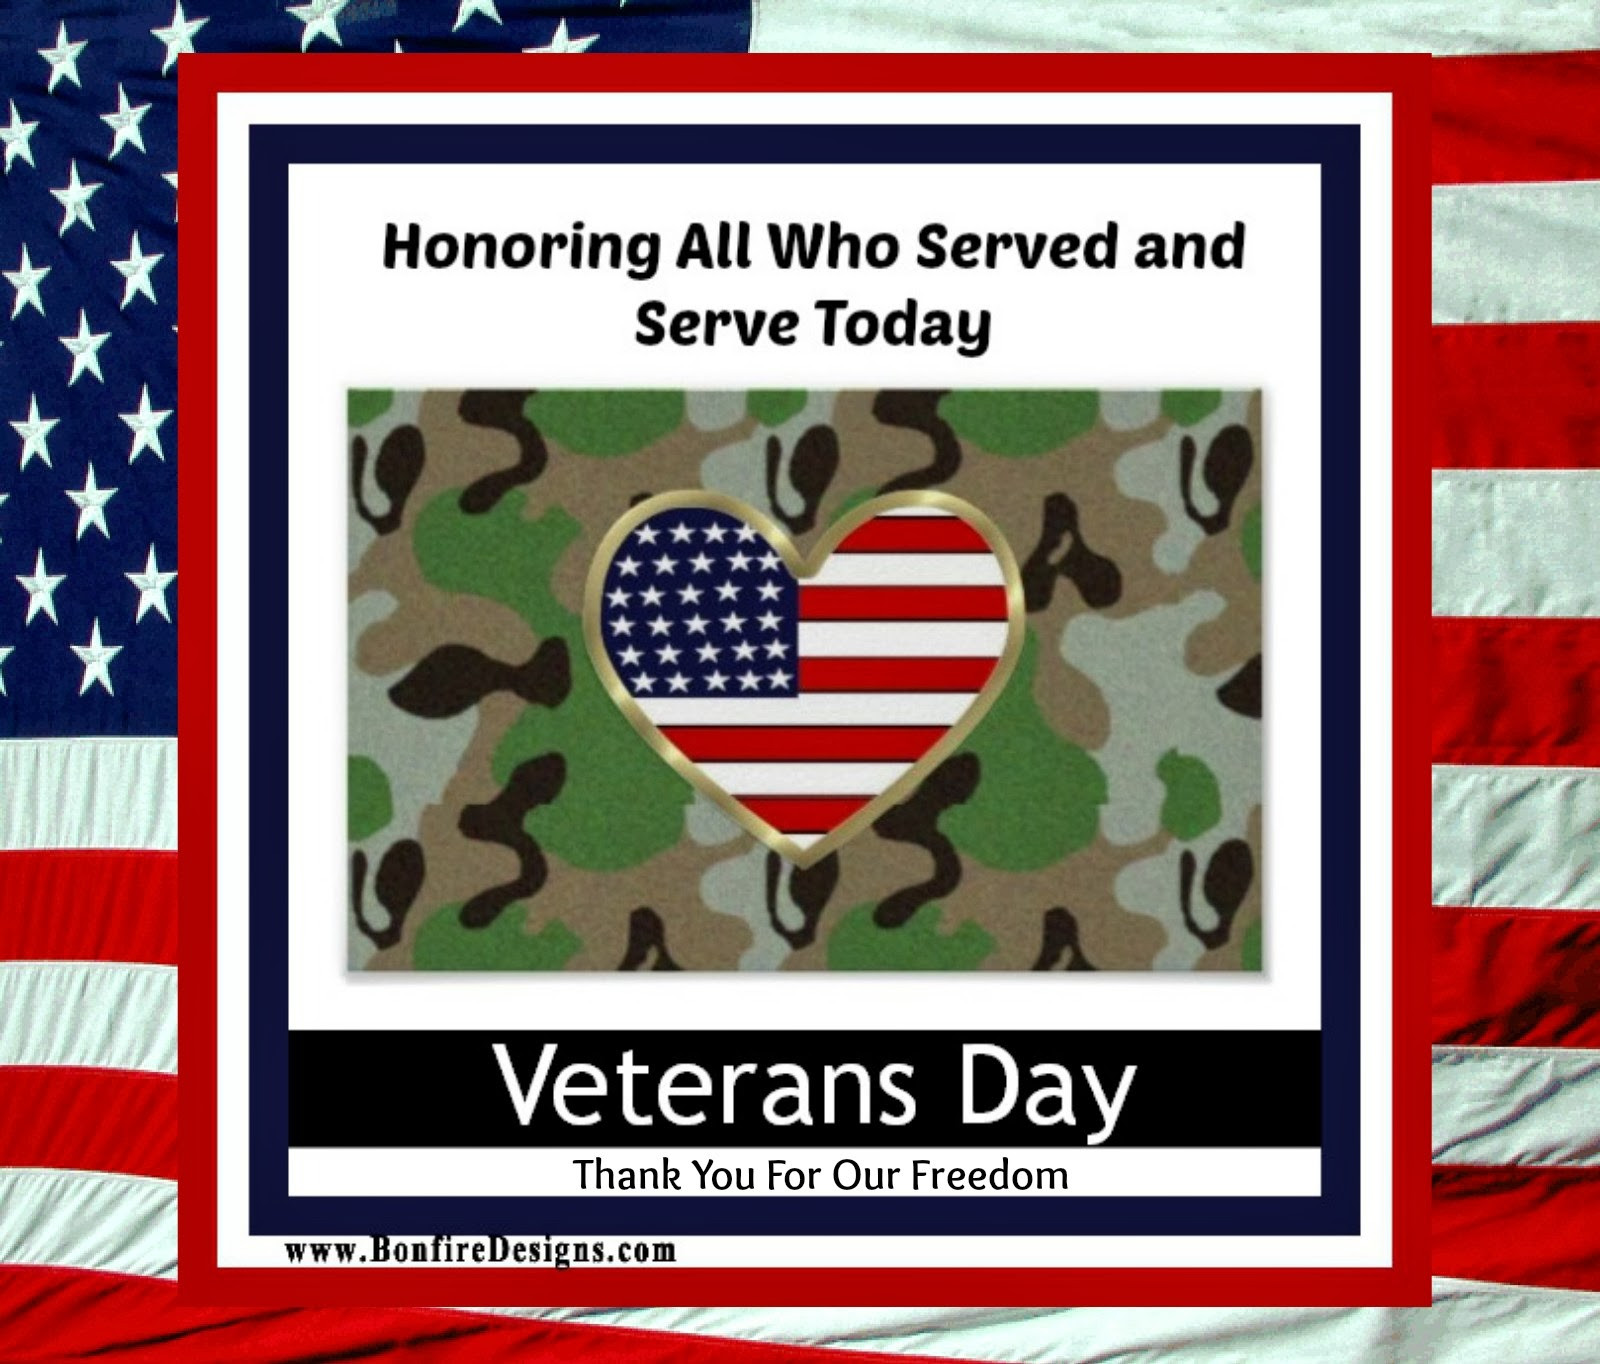 Best ideas about Veterans Day Gift Ideas . Save or Pin Personalized Gifts and Holiday Gift Ideas Honor Veterans Now.